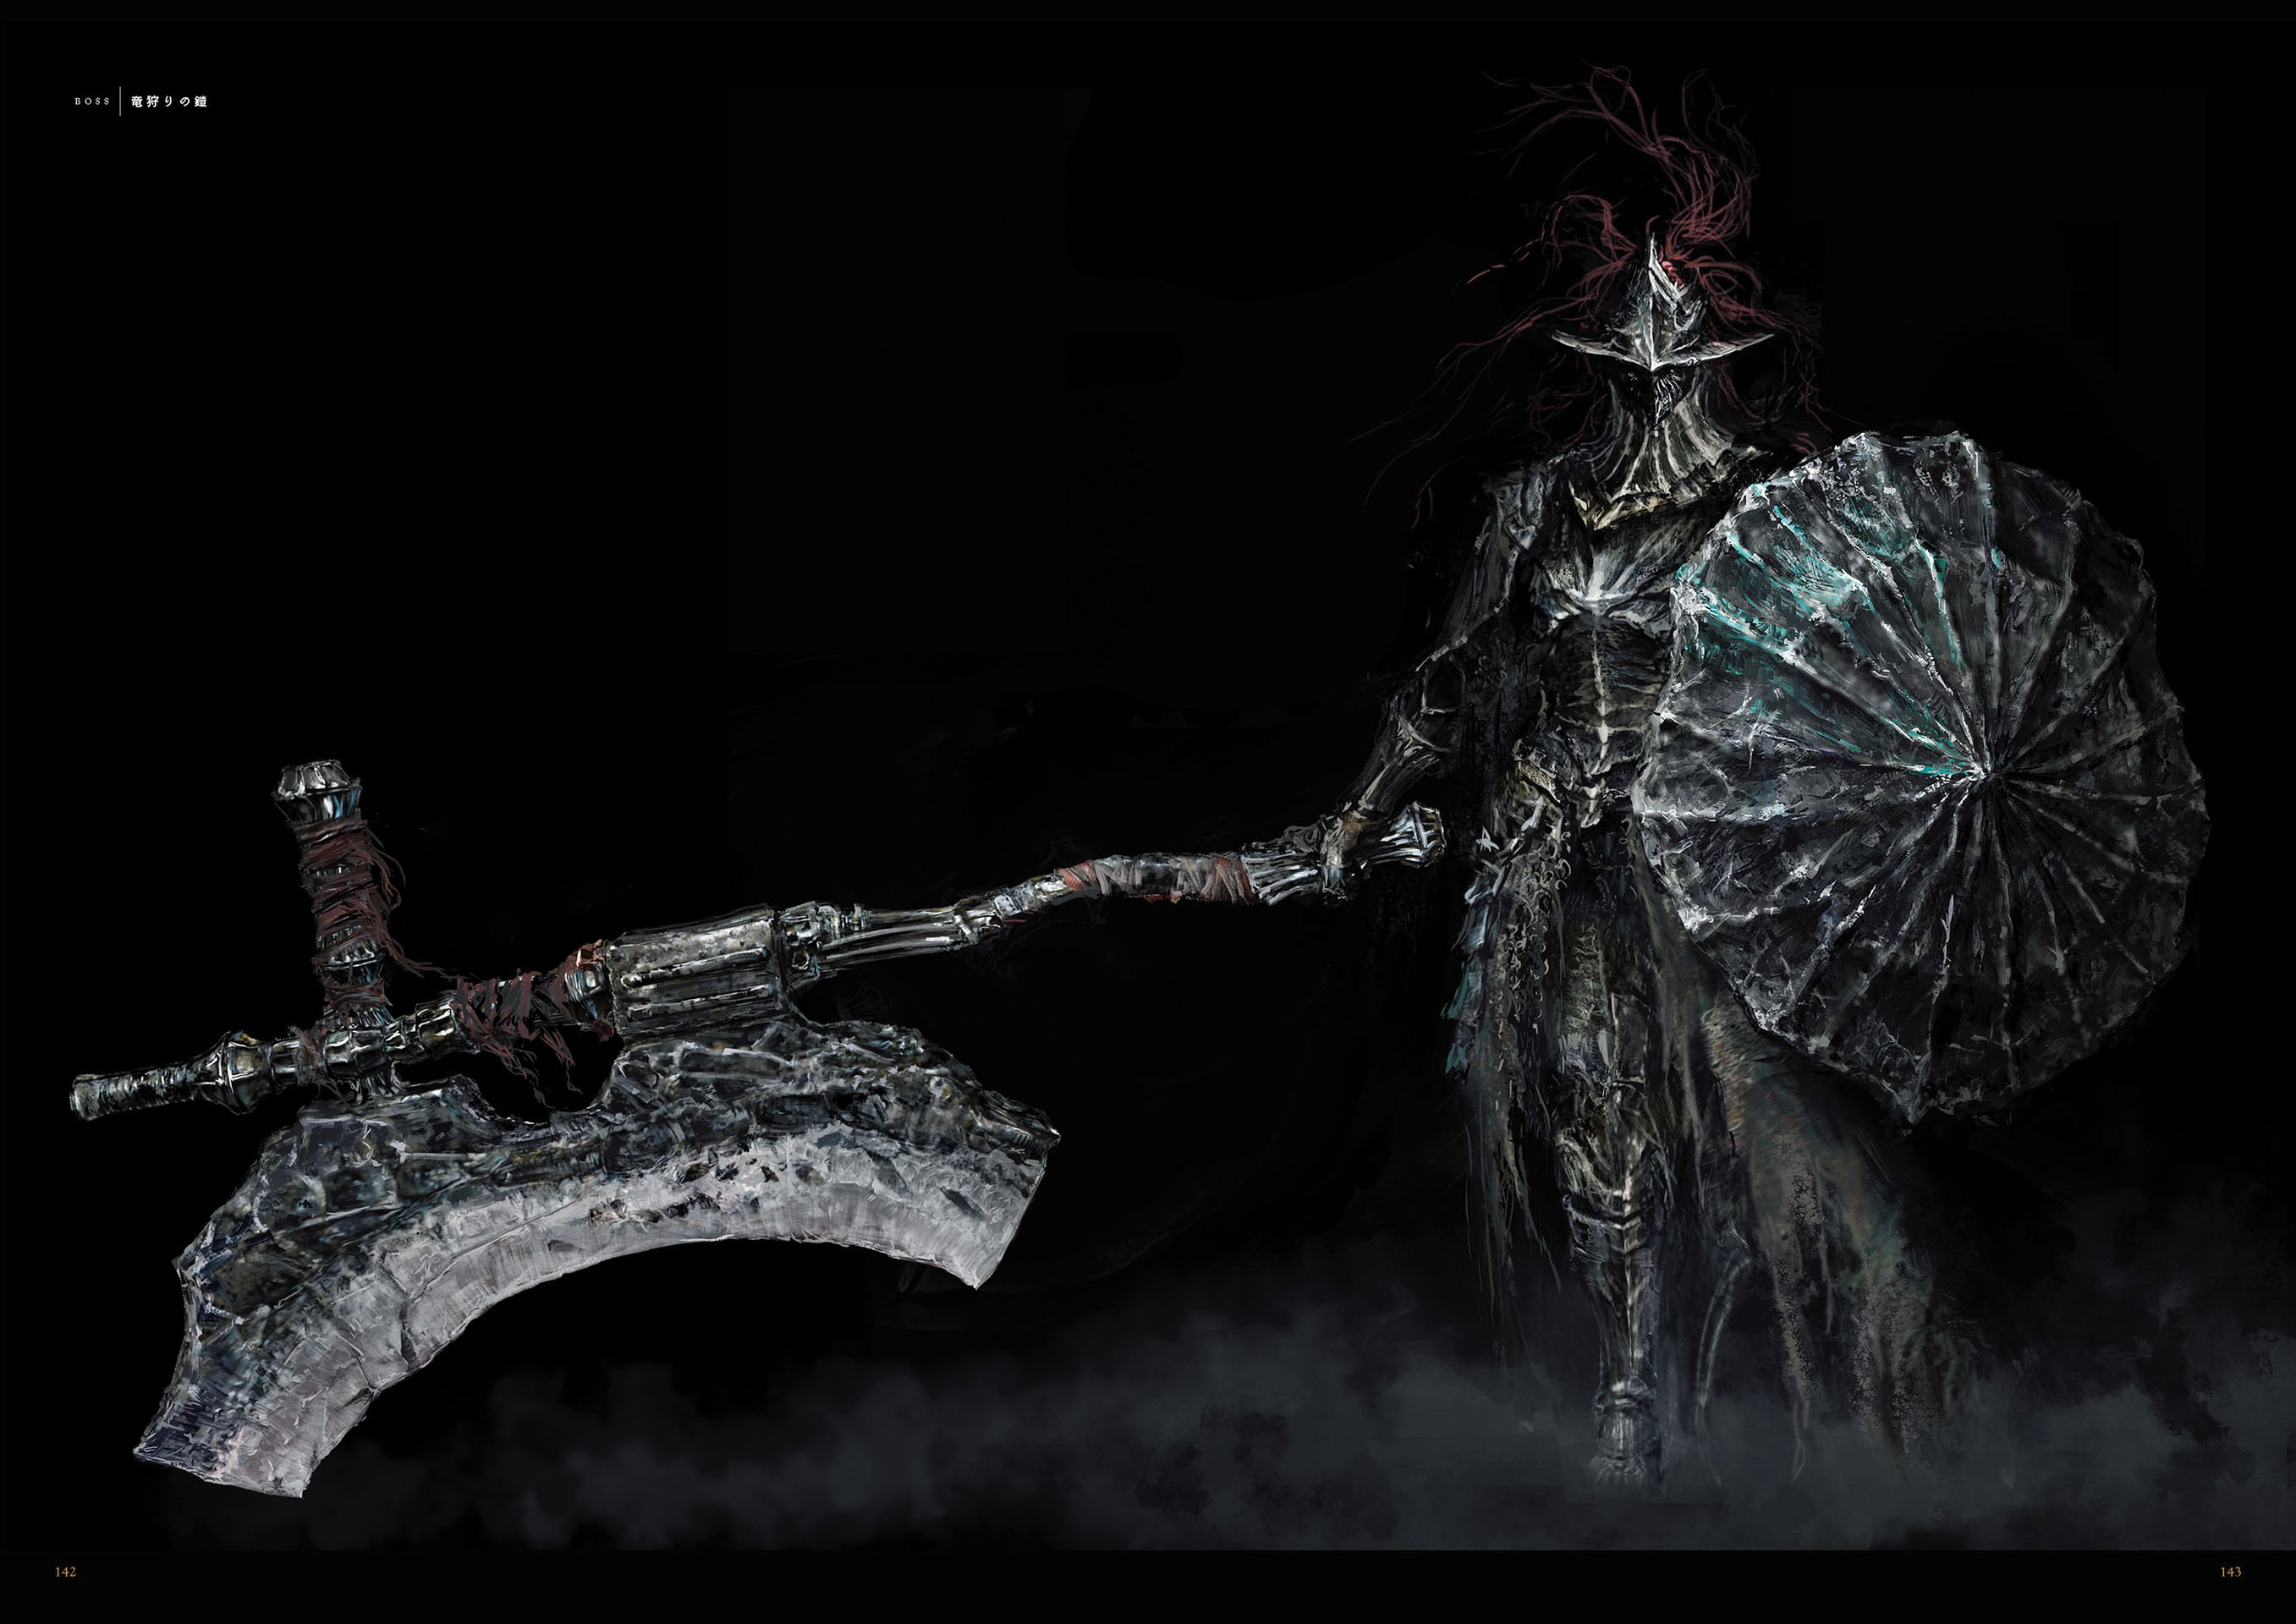 100 Pictures of Dragonslayer Armor